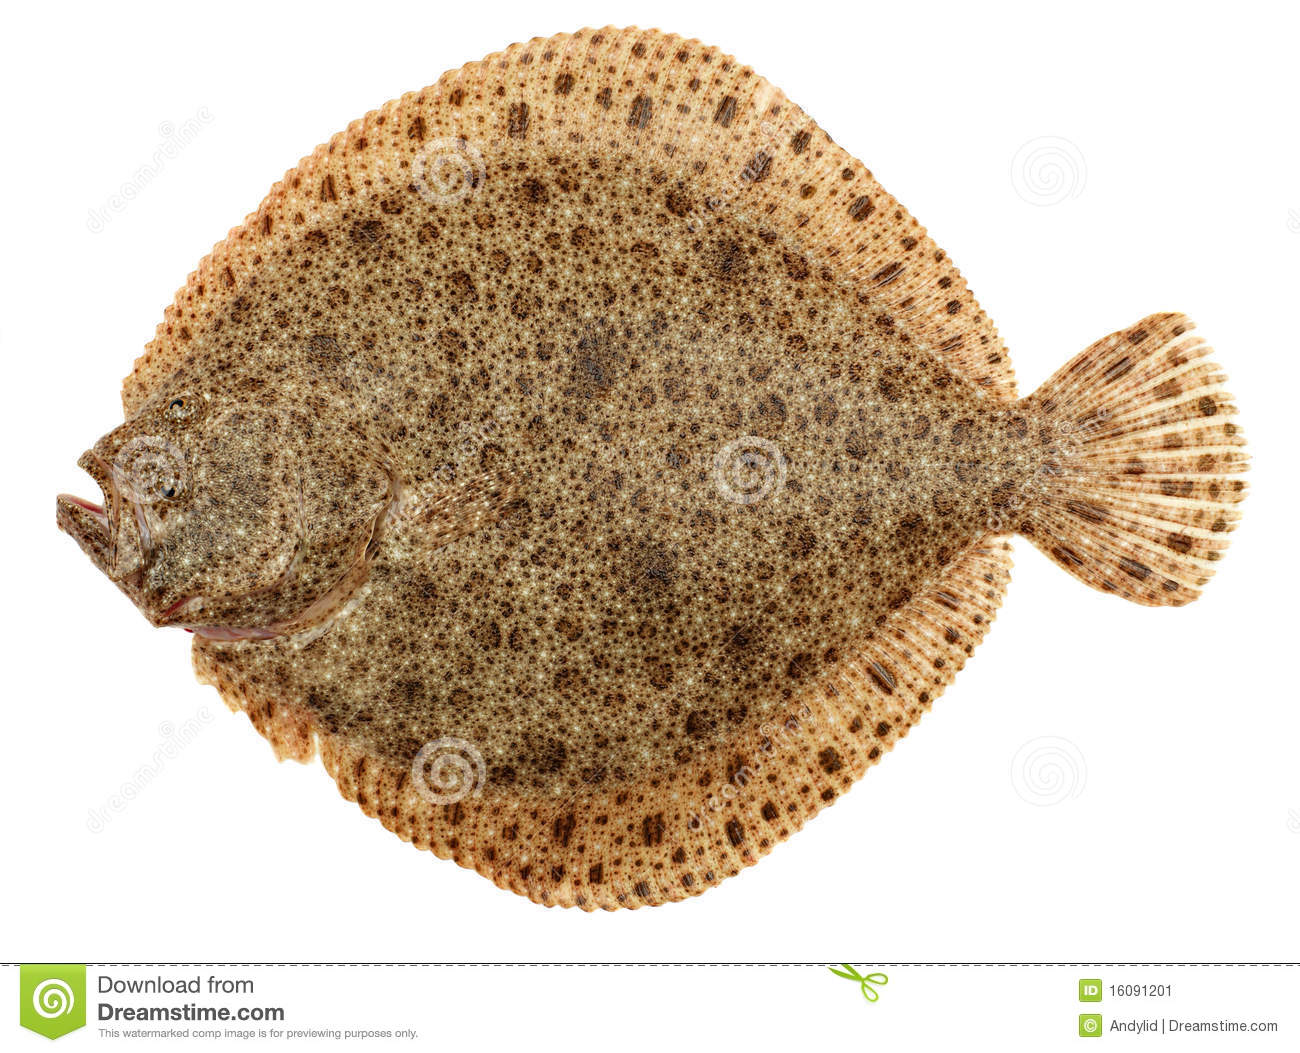 Freshly Caught Turbot (Psetta maxima) Isolated on White Background.